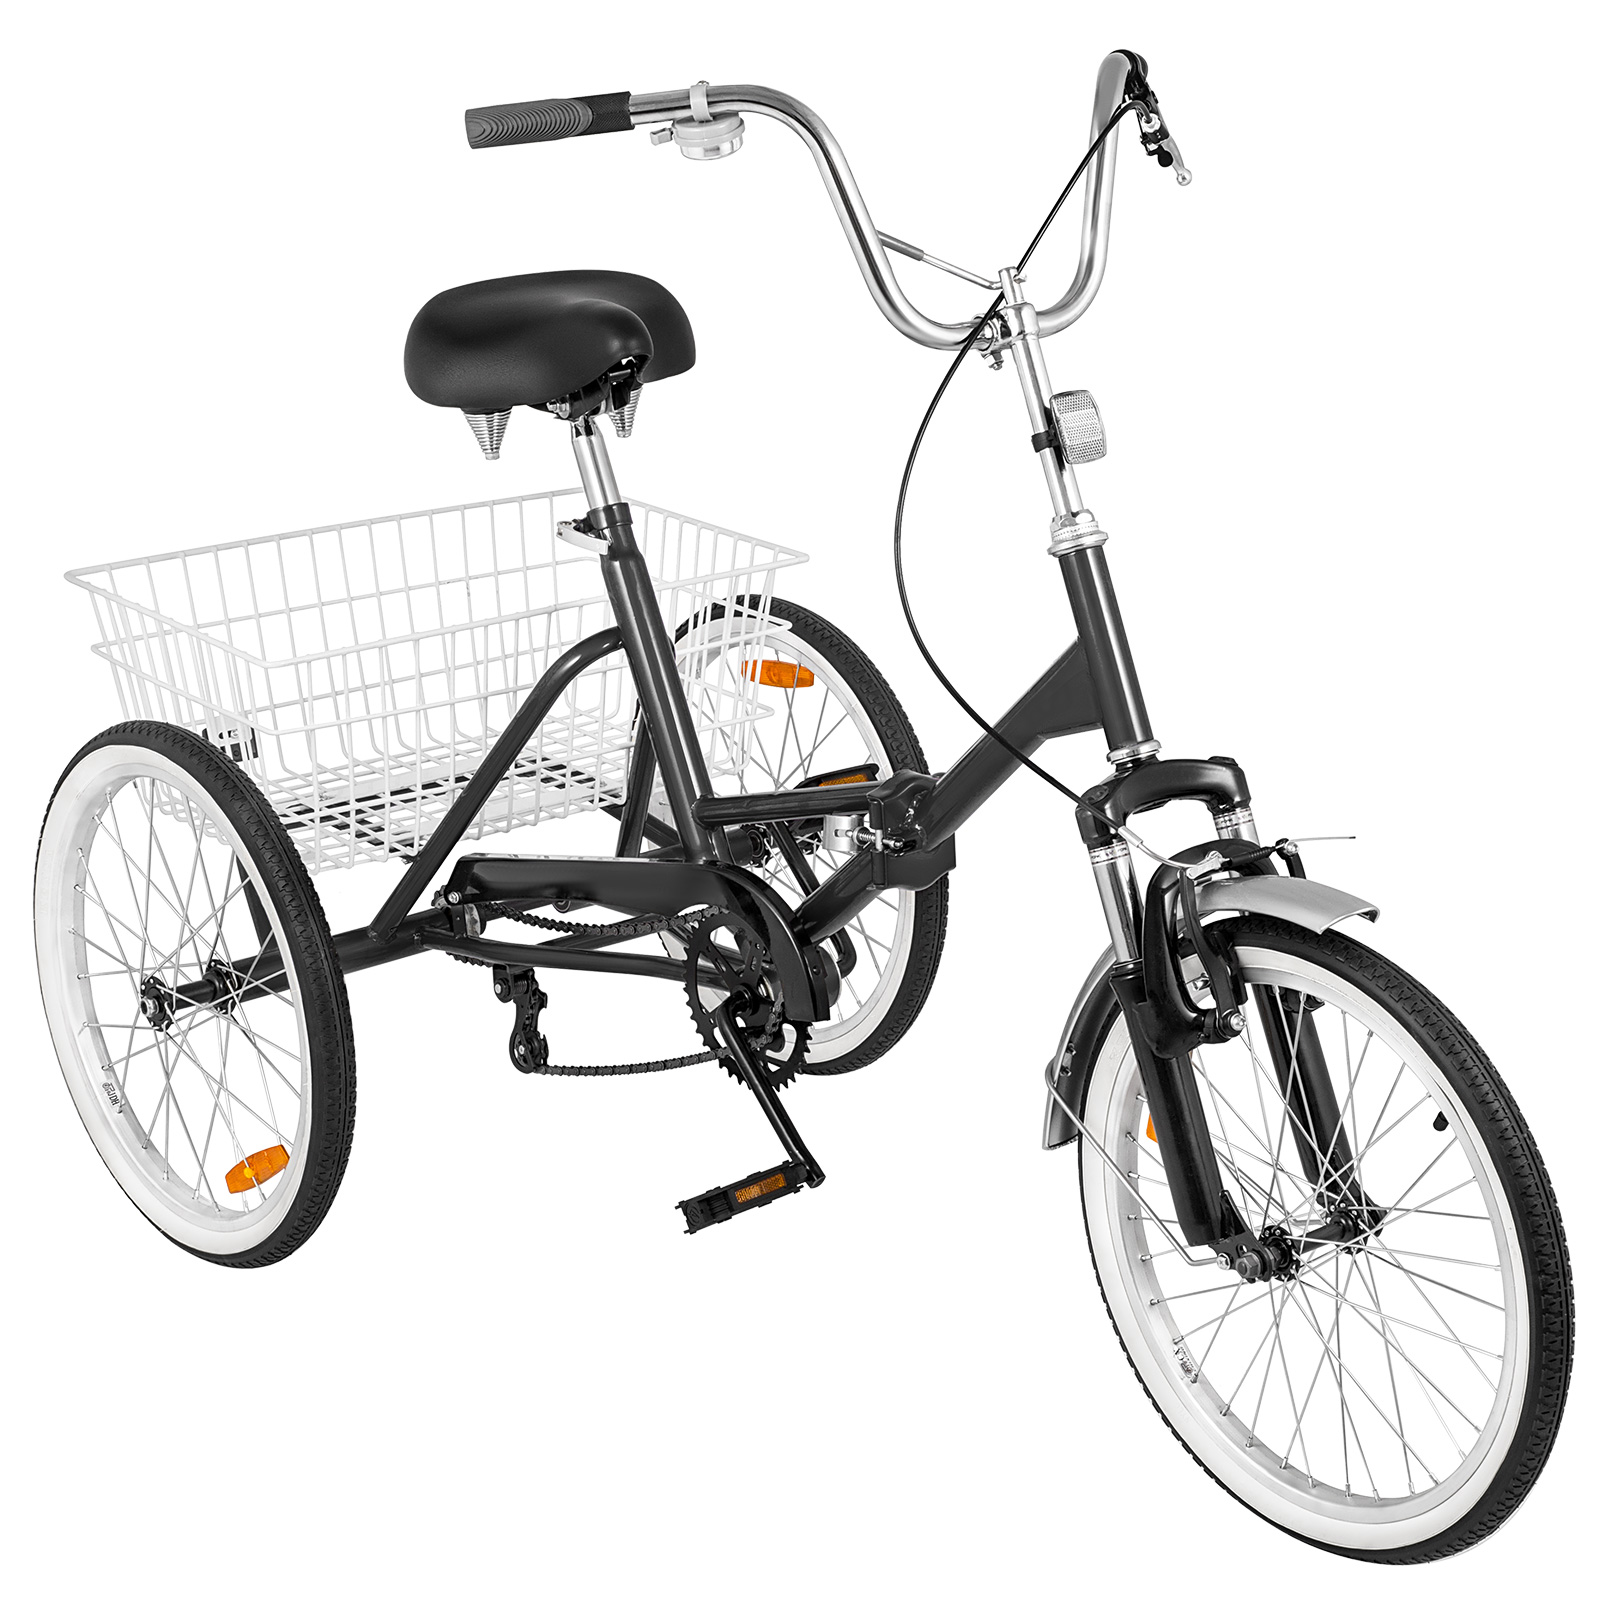 20-24-26-034-Adult-Tricycle-1-7-Speed-3-Wheel-Large-Basket-For-Shopping-Optional thumbnail 69